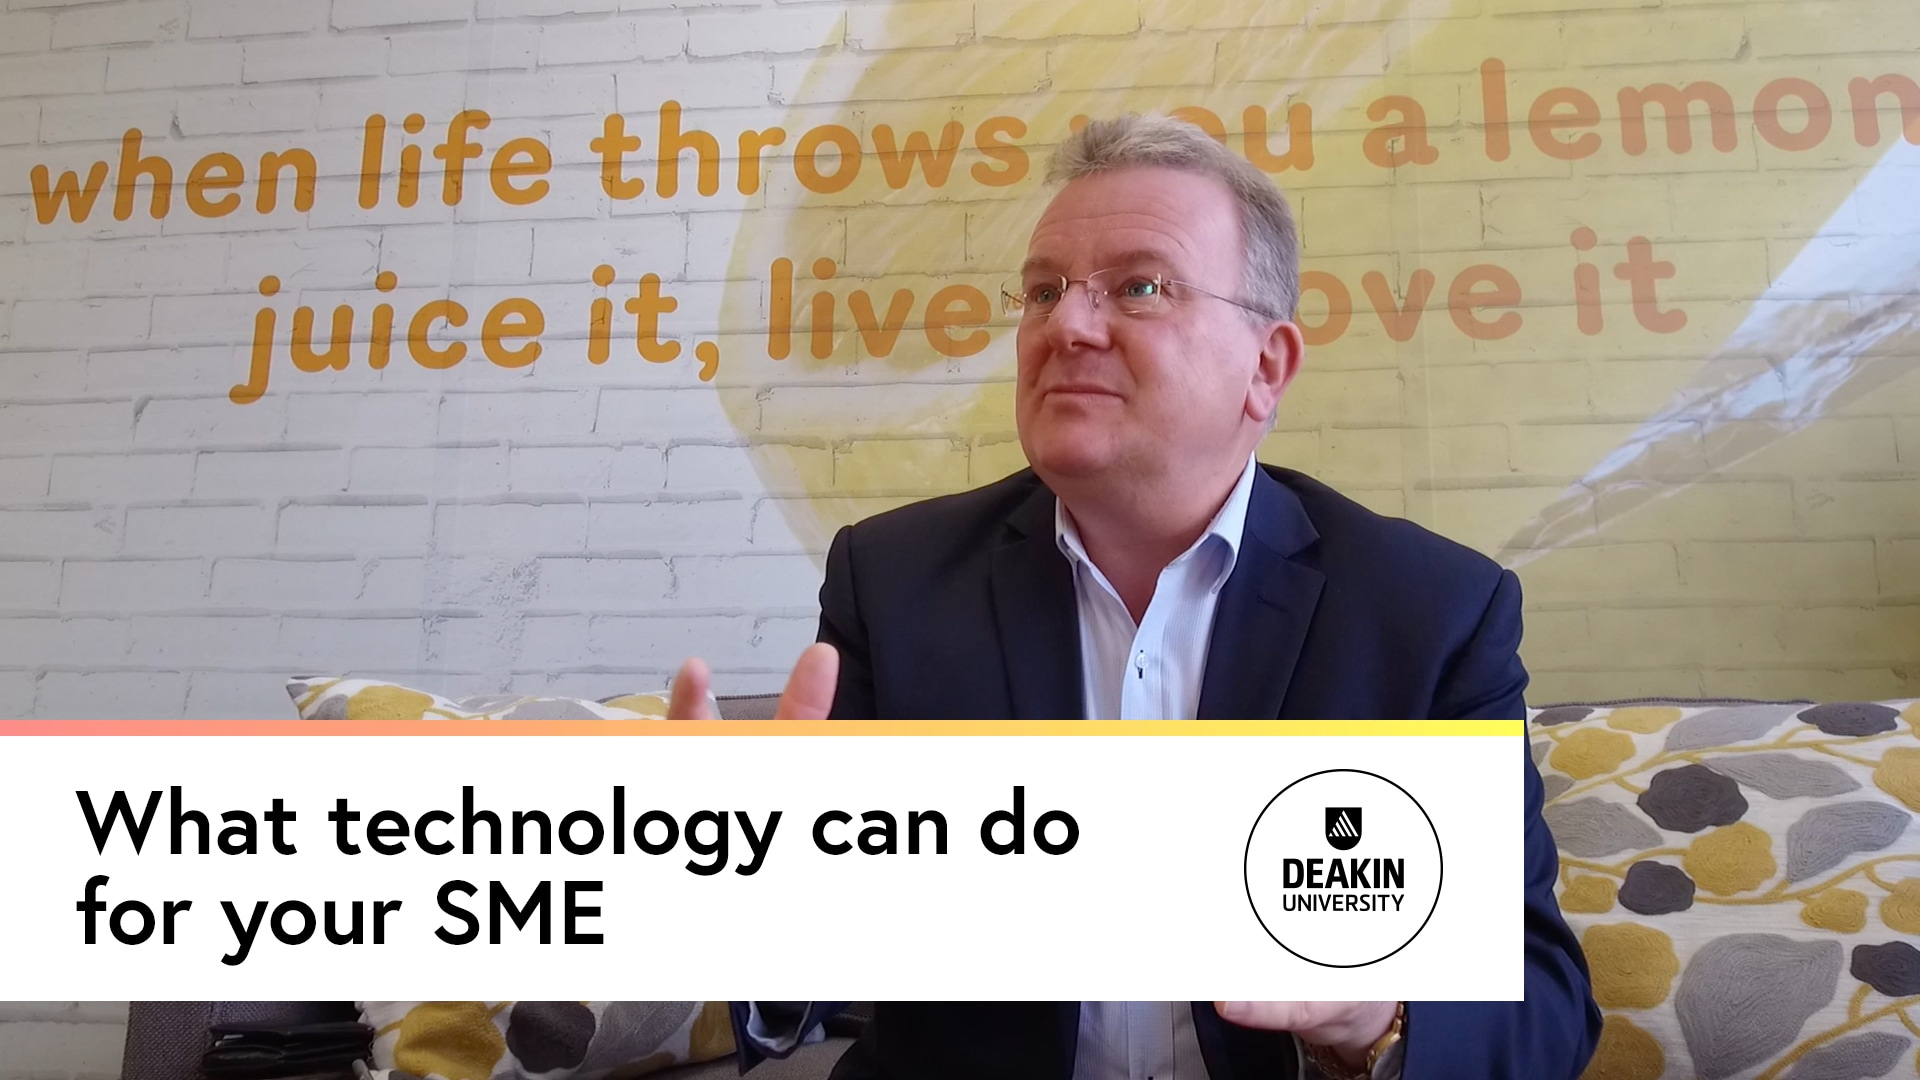 What technology can do for your SME